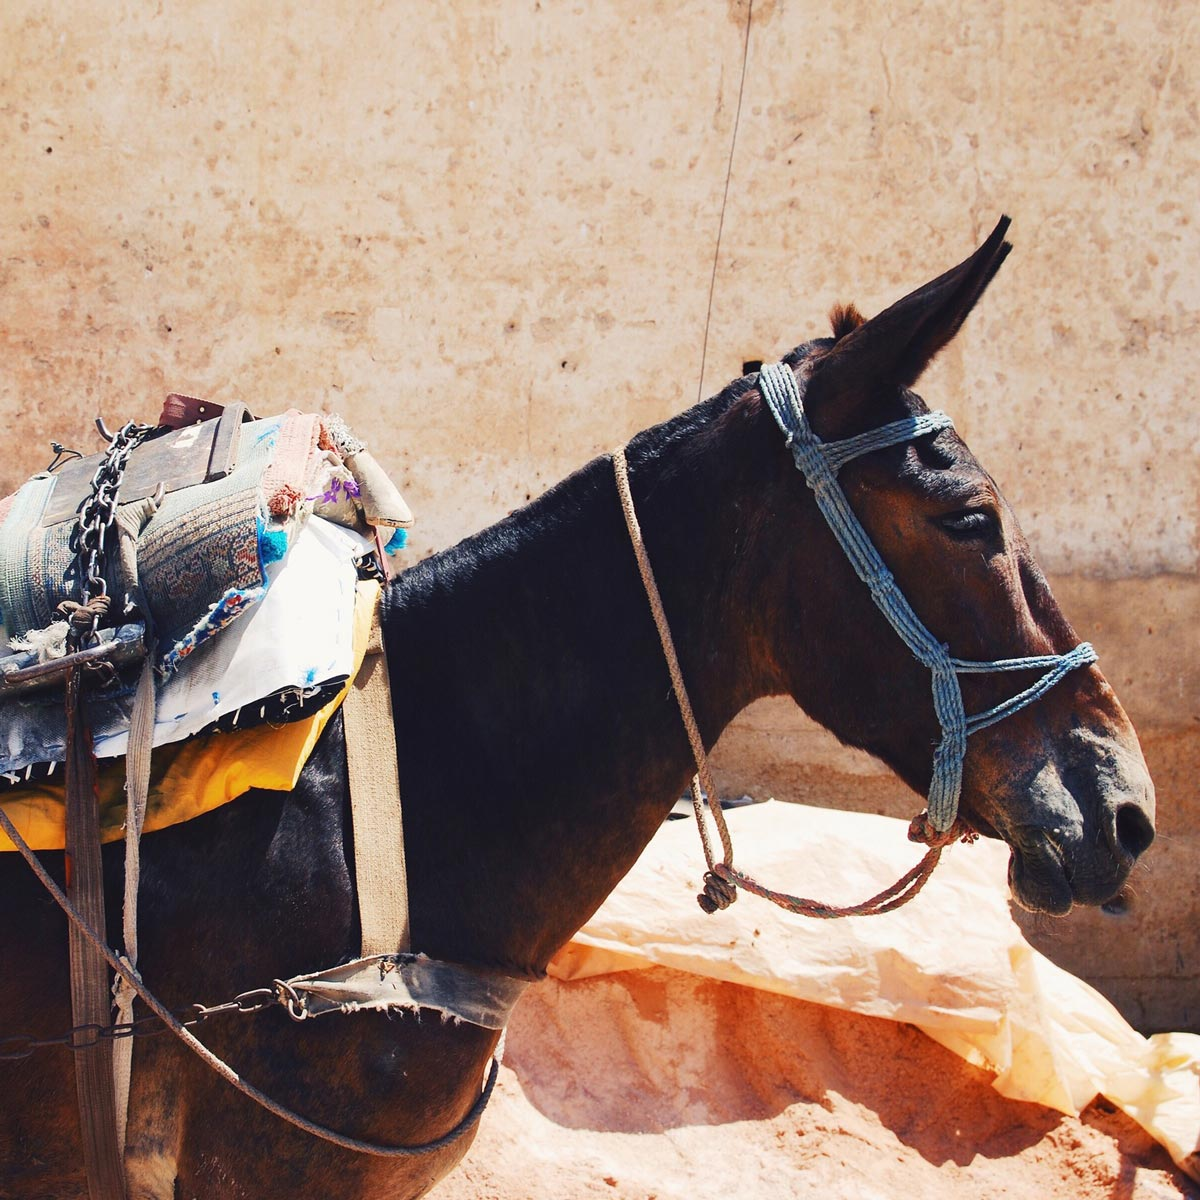 A mule with luggage and ears perked